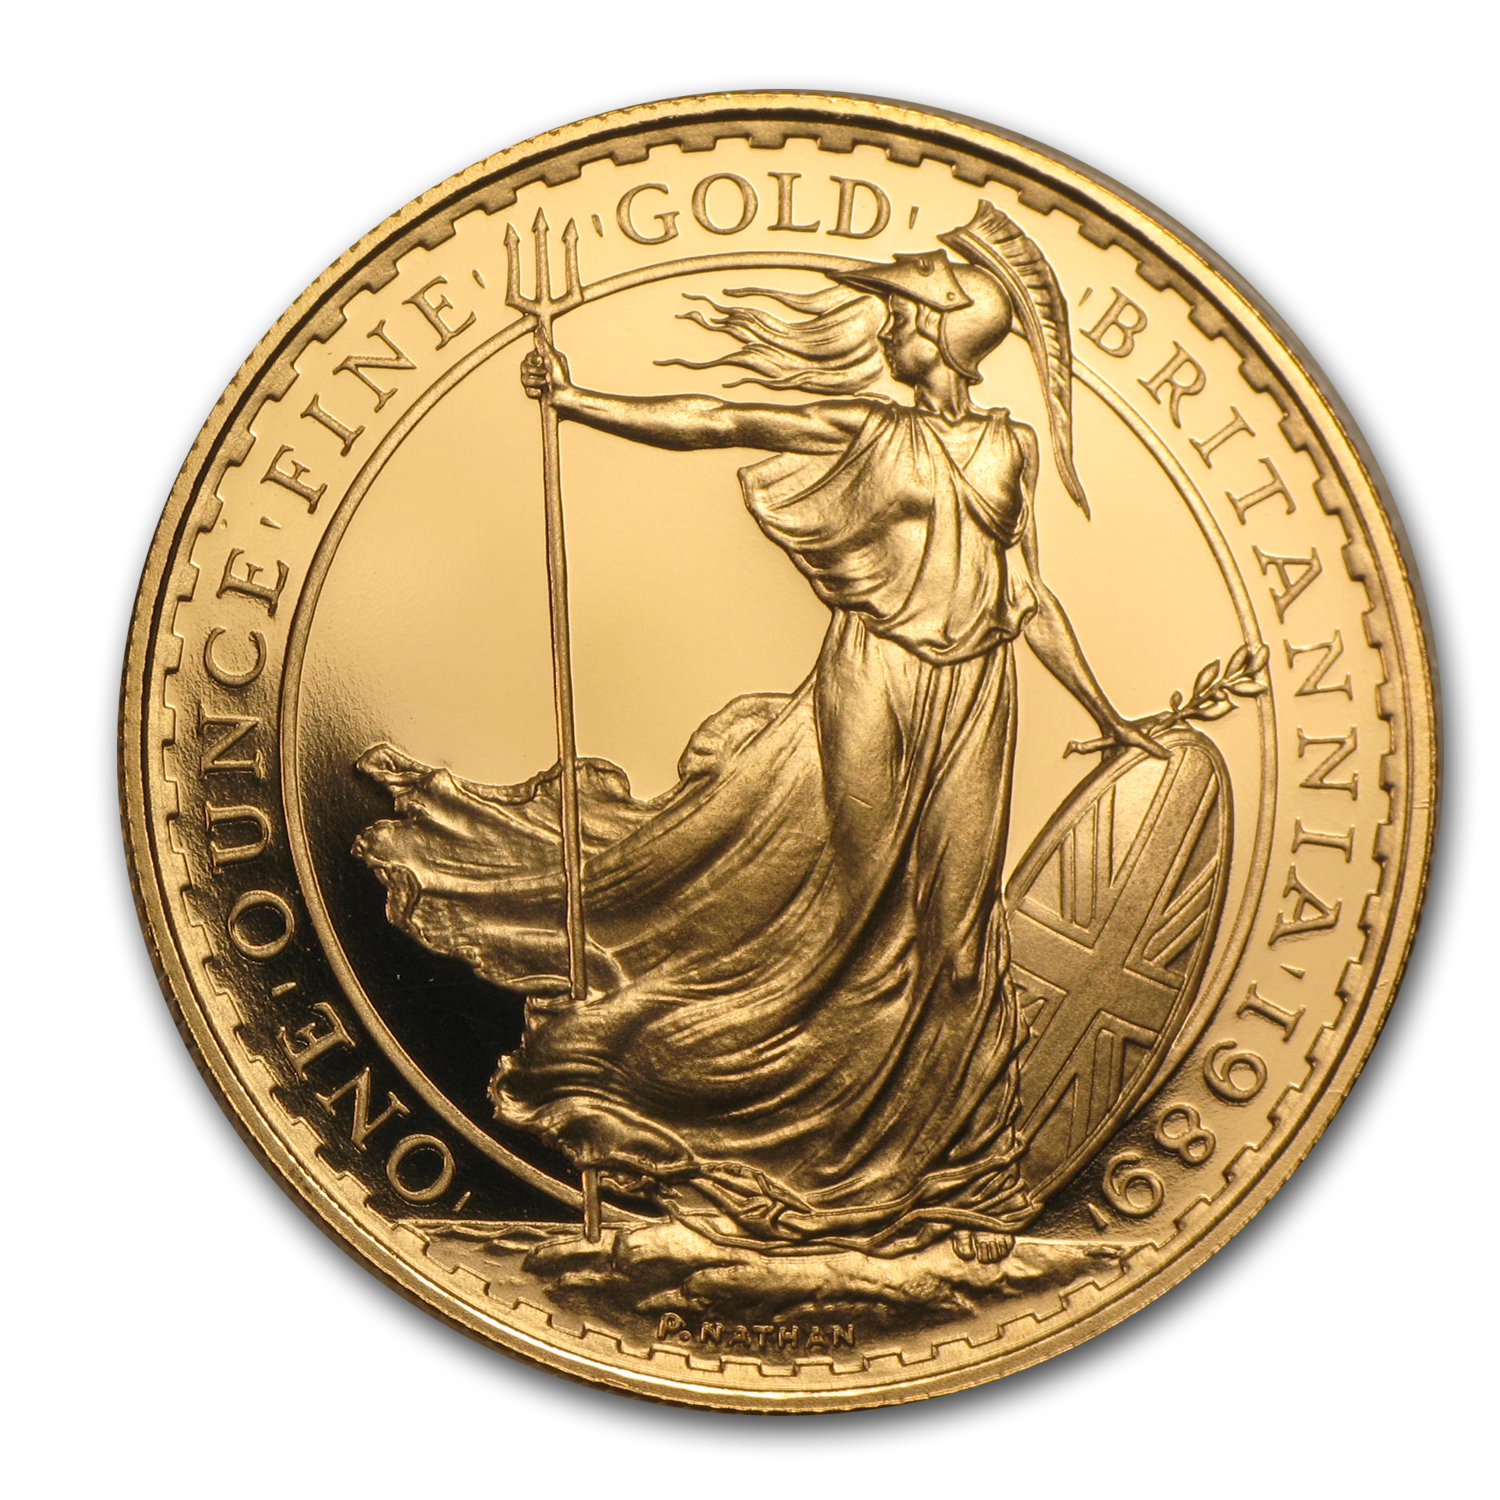 1989 Great Britain 1 oz Gold Britannia Proof